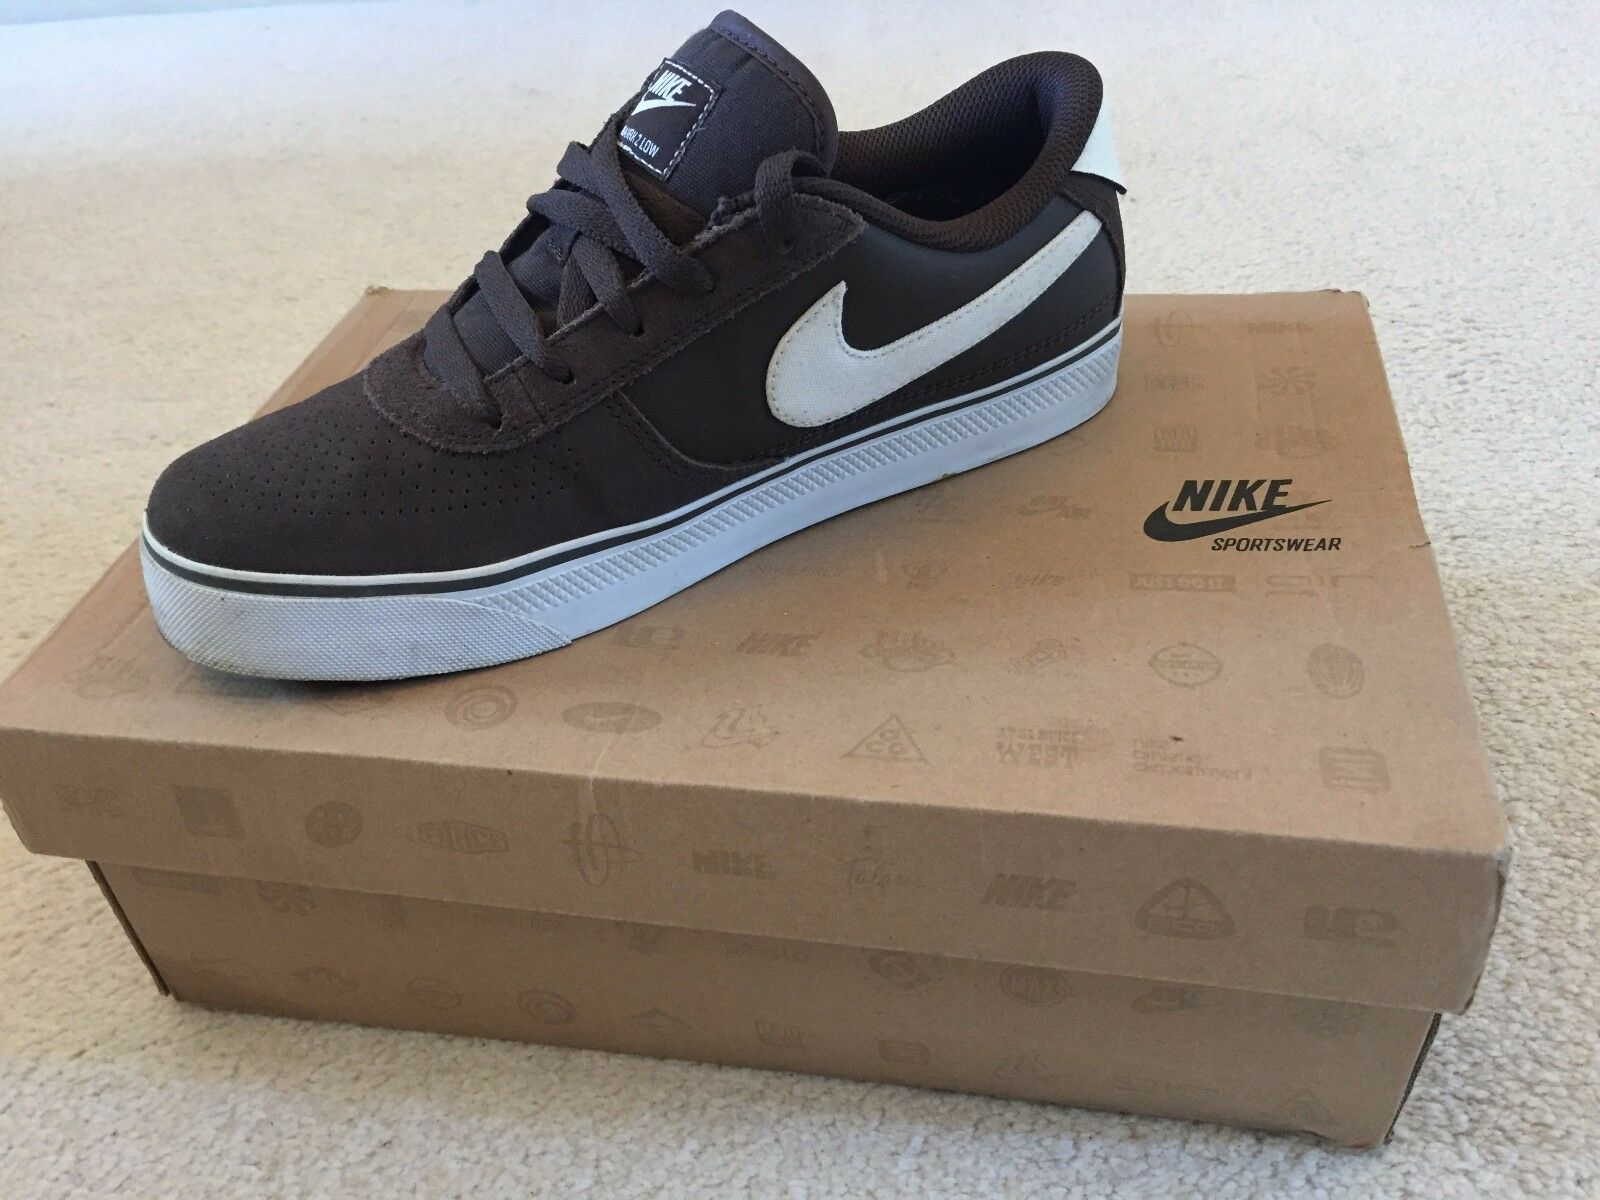 Nike Blazers Trainers | Low Top Casual Shoes/Boots | Brown Suede Leather New shoes for men and women, limited time discount